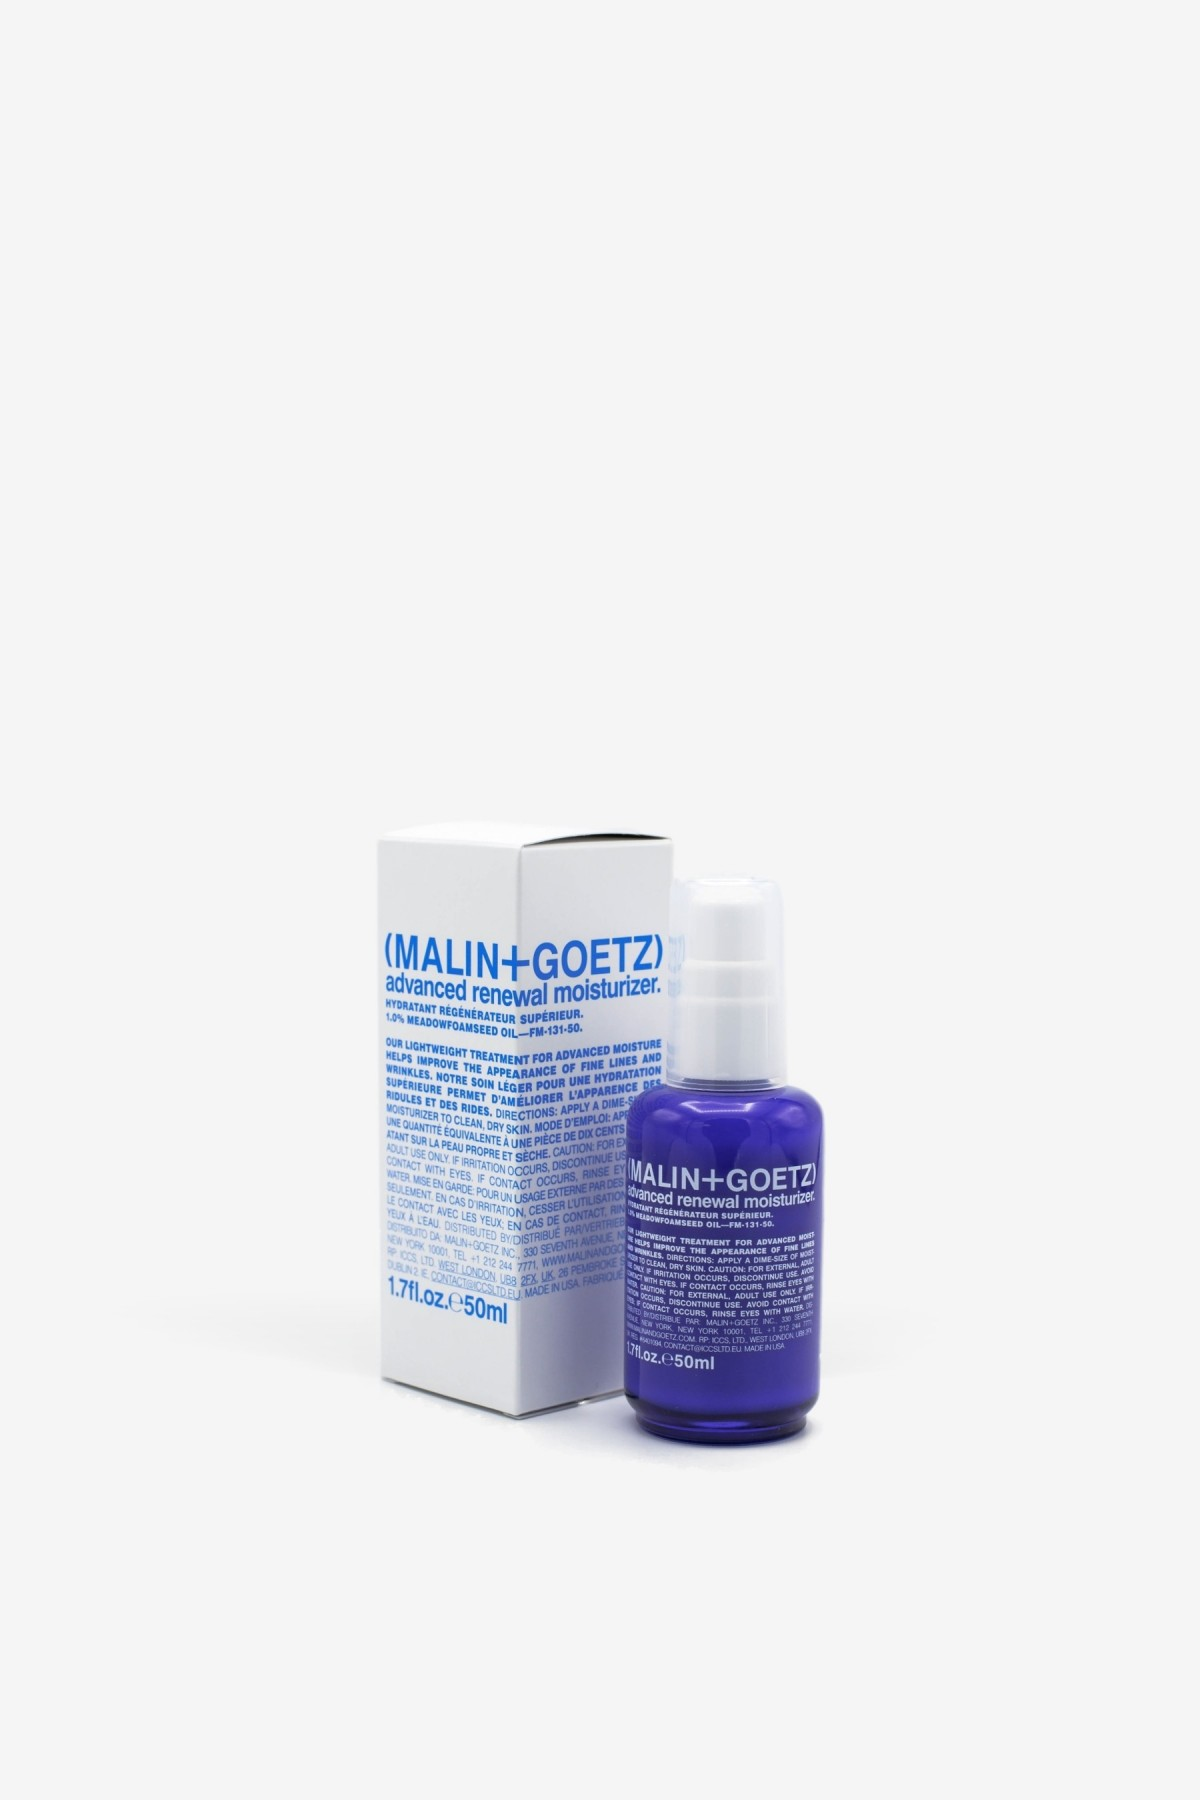 Malin+Goetz Advanced Renewal Moisturizer 50ml in